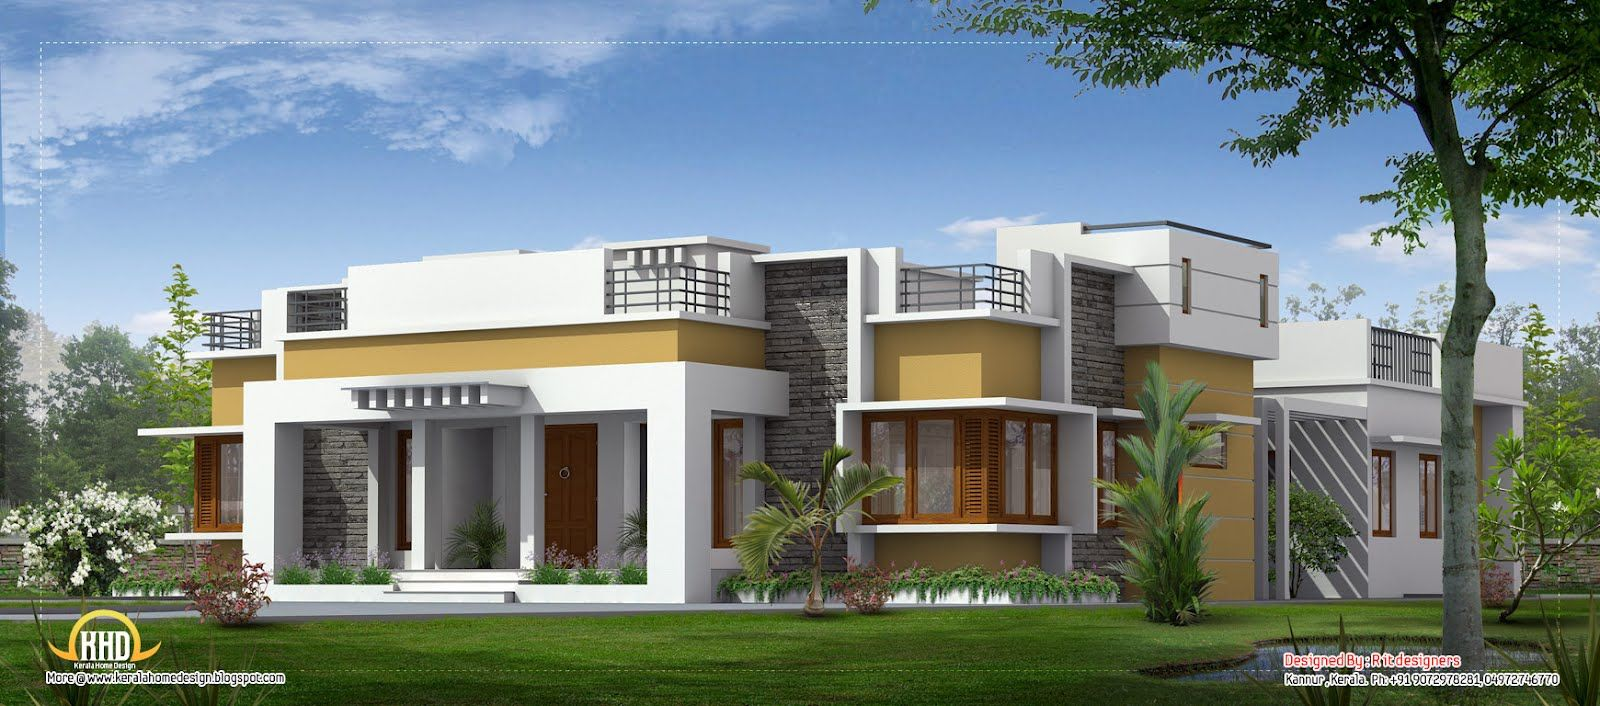 Single level designer home single floor house plans for Single level home plans